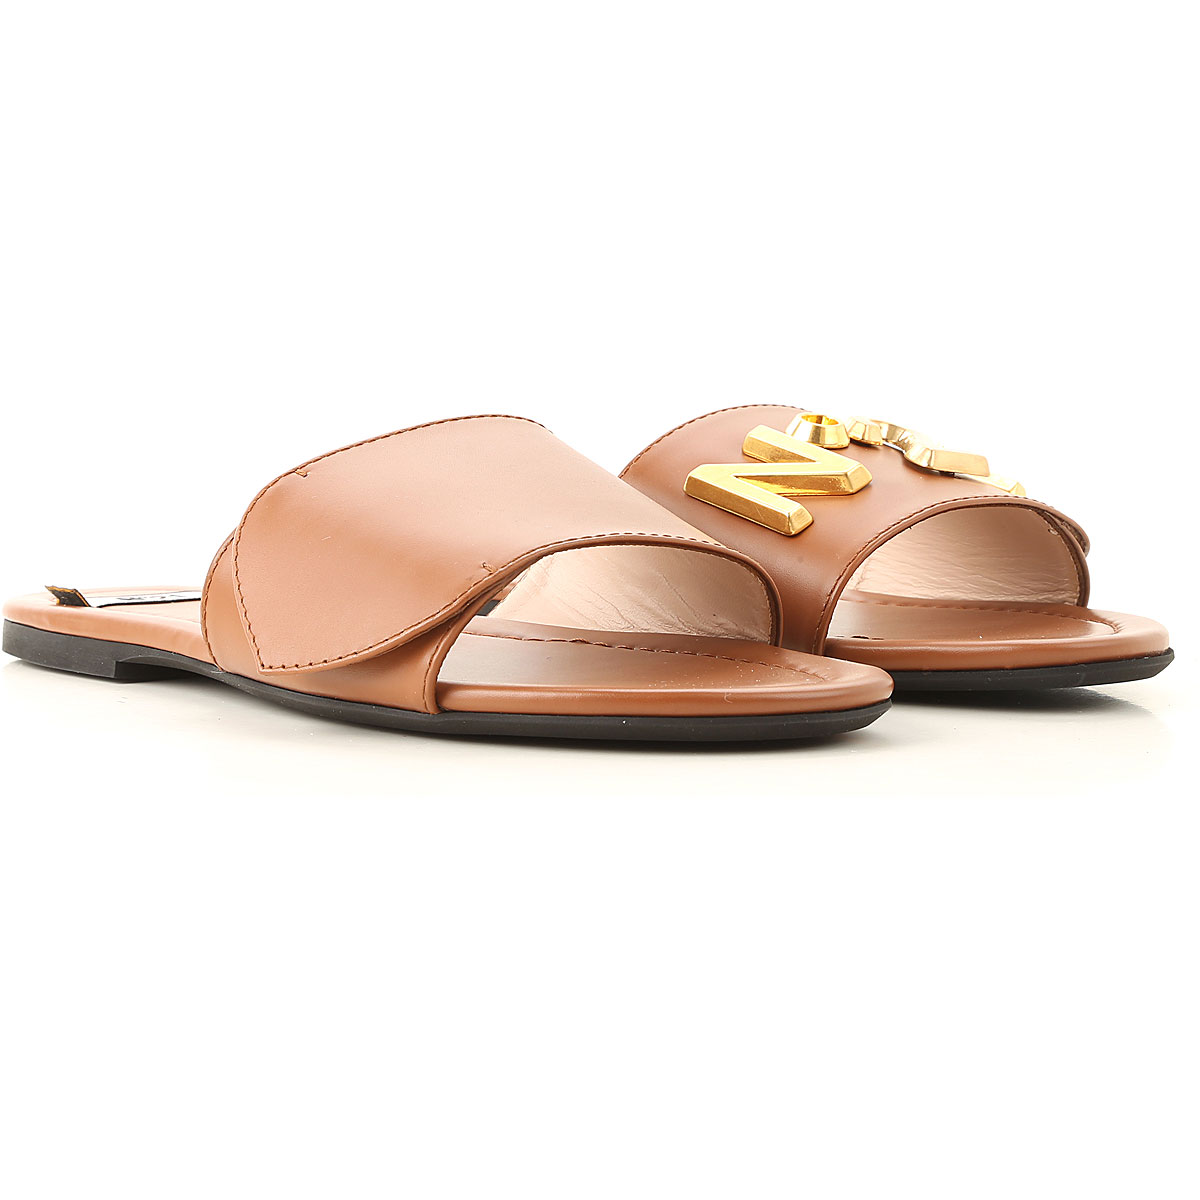 NO 21 Sandals for Women On Sale, Leather, Leather, 2019, 10 11 7 9